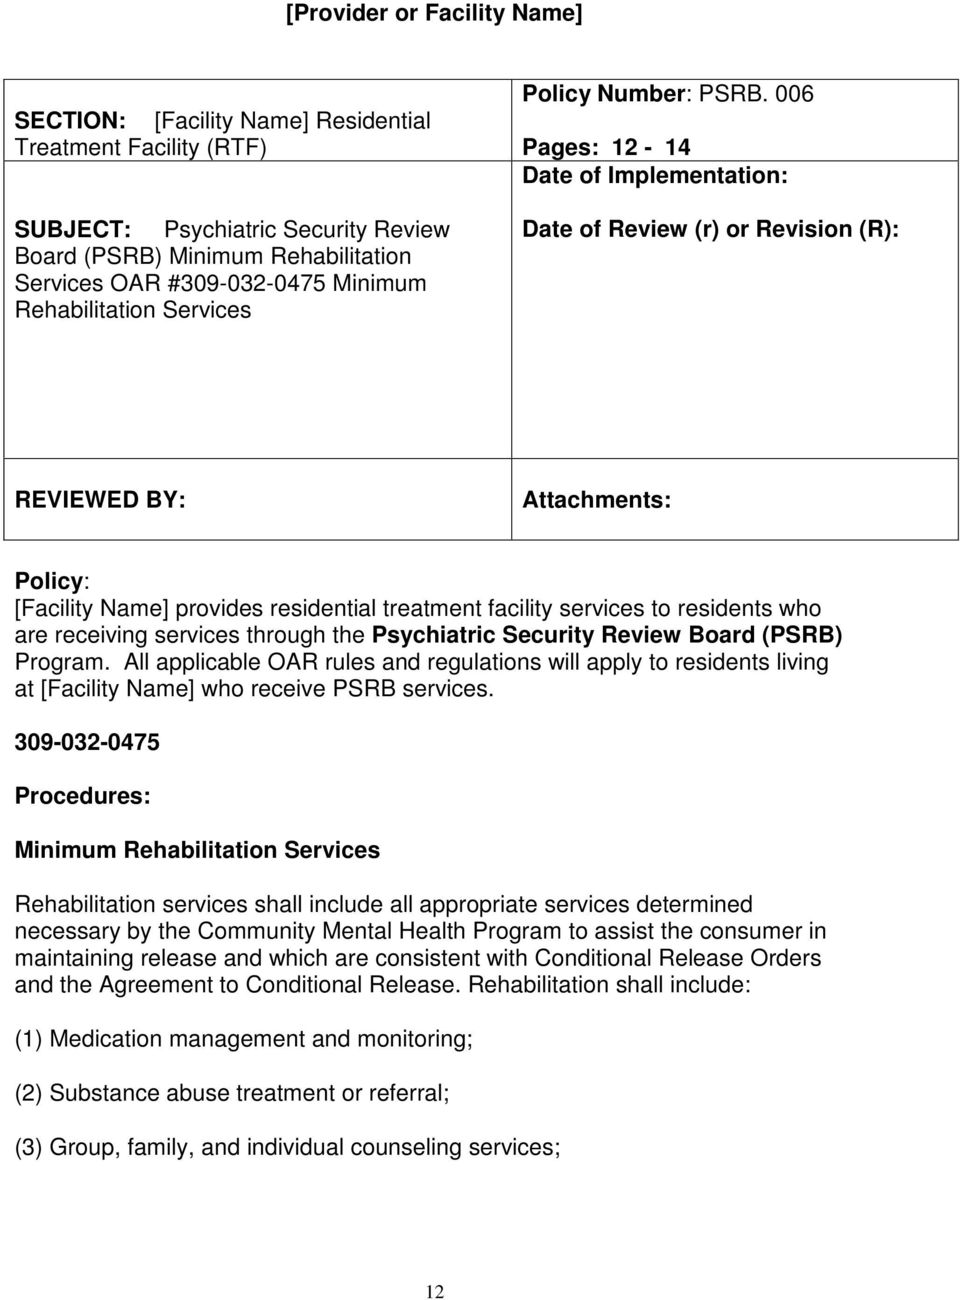 006 Pages: 12-14 Date of Implementation: Date of Review (r) or Revision (R): REVIEWED BY: Attachments: Policy: [Facility Name] provides residential treatment facility services to residents who are